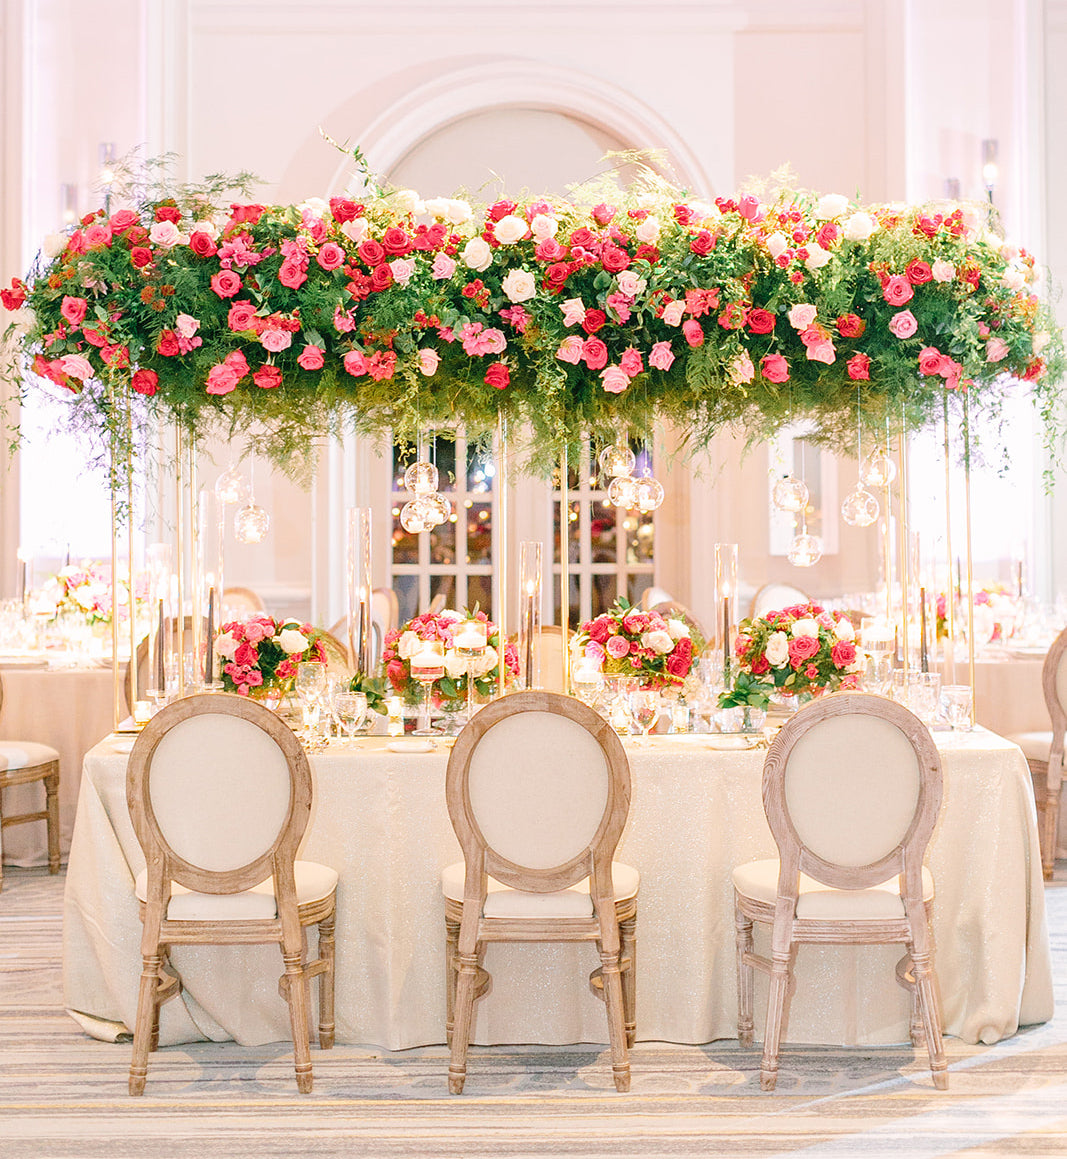 Romance in Bloom Event Floral Design